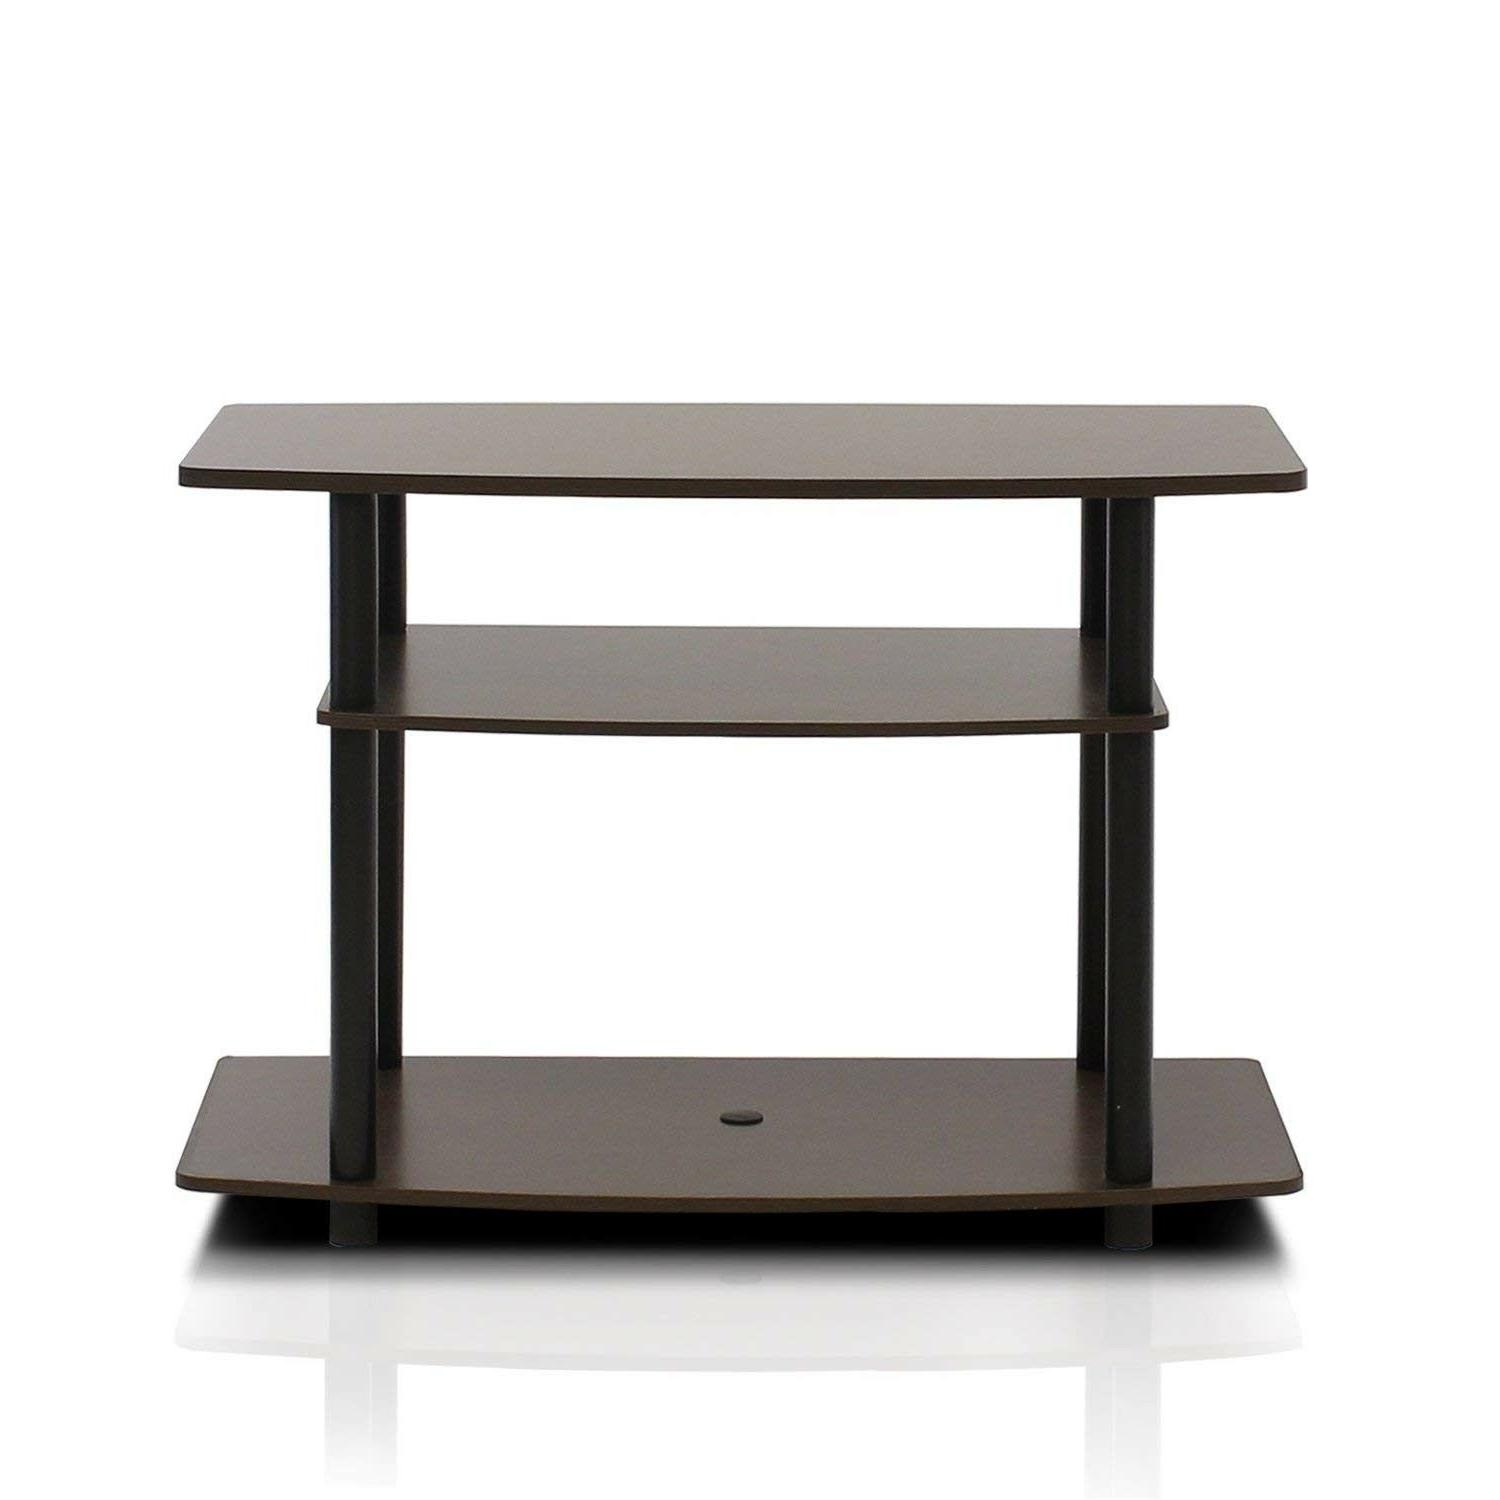 Small Stand Storage Media Console Entertainment Table